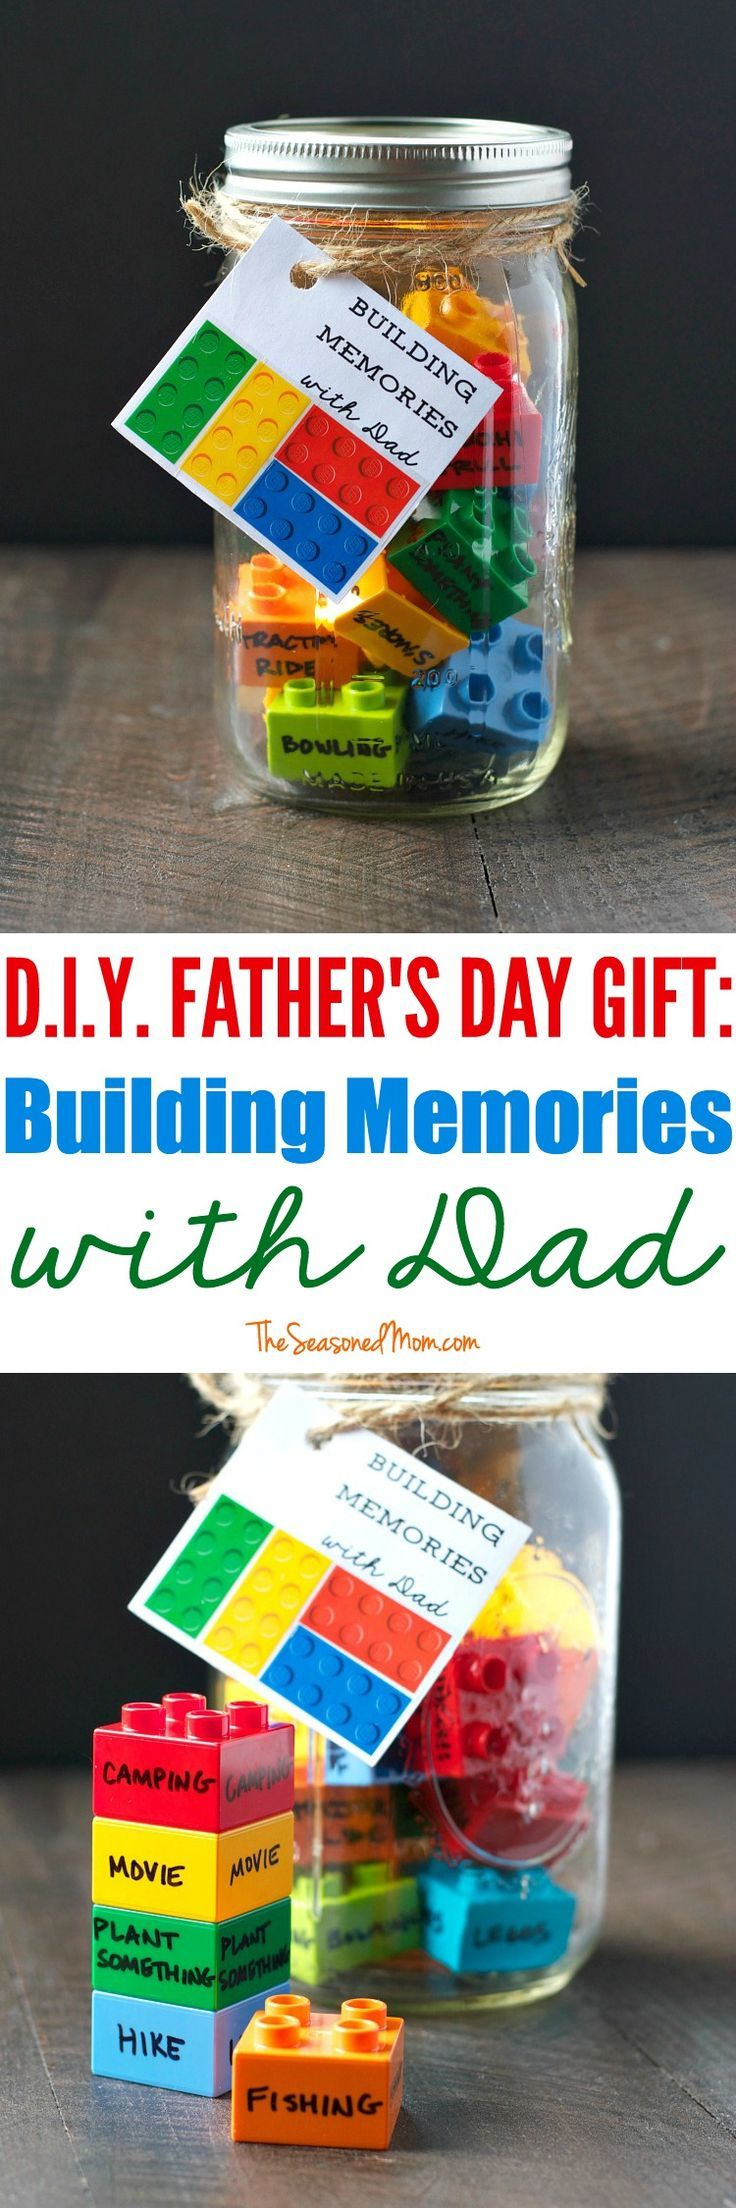 Best 25 dad birthday crafts ideas on pinterest fathers day best 25 dad birthday crafts ideas on pinterest fathers day crafts gifts for daddy and fathers day ideas solutioingenieria Image collections